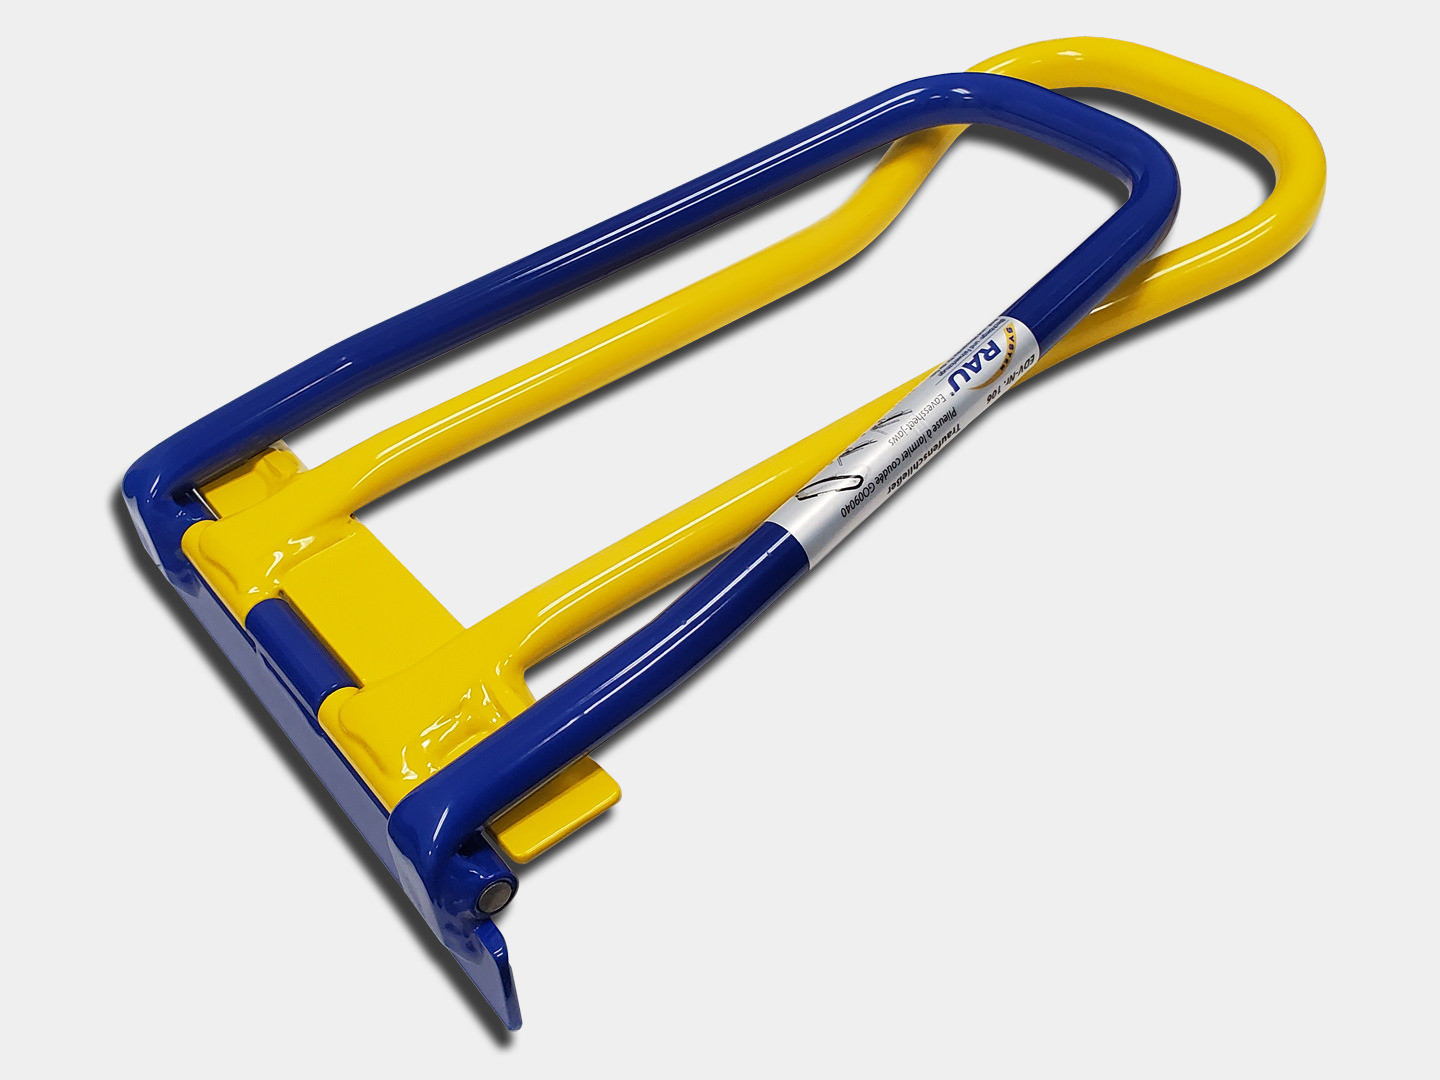 Rau systems 106 eaves closing tool for metal roofing